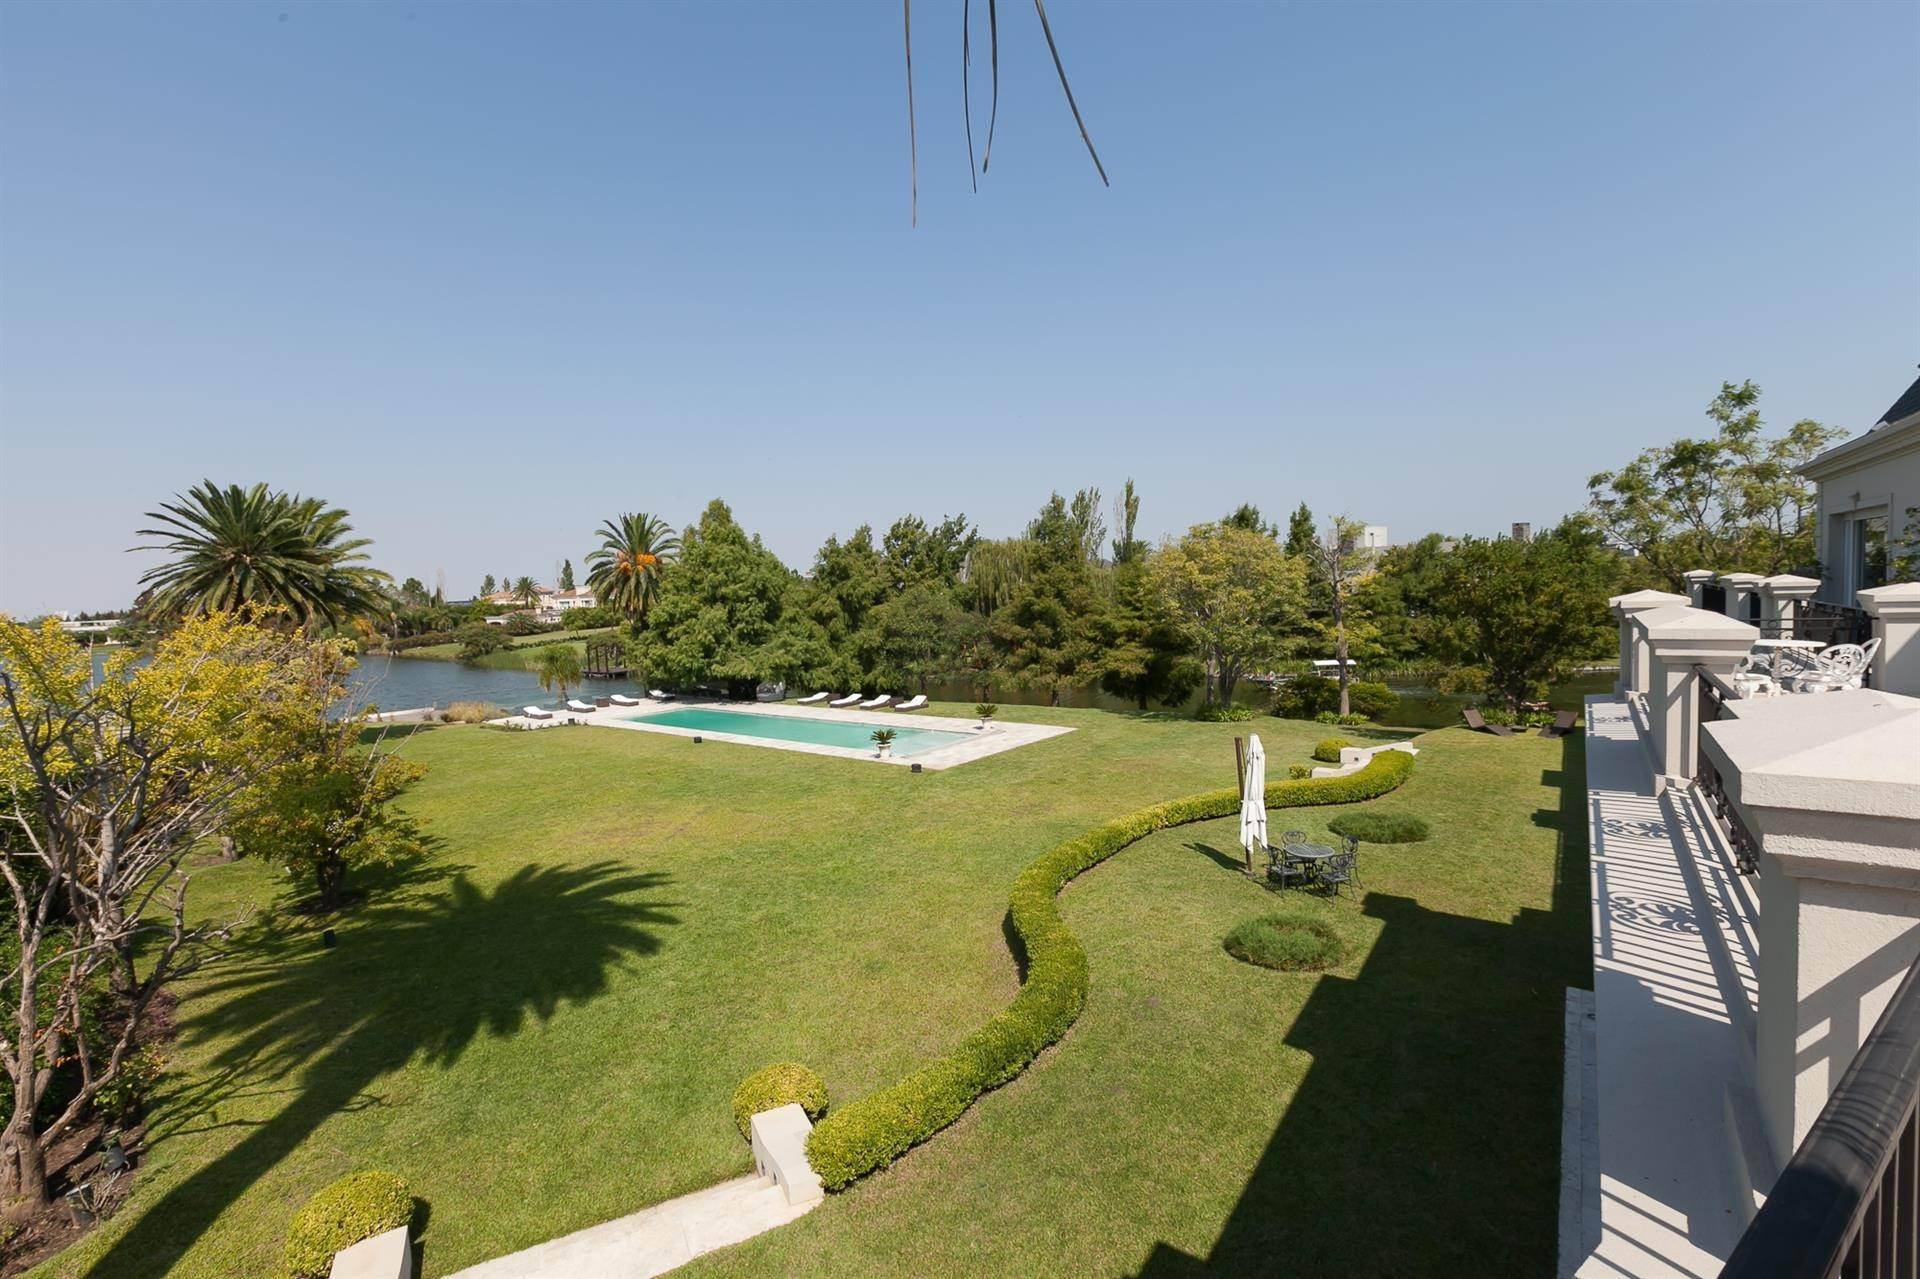 35. Single Family Home for Sale at Incredible house in La Isla, Nordelta Tigre, Argentina